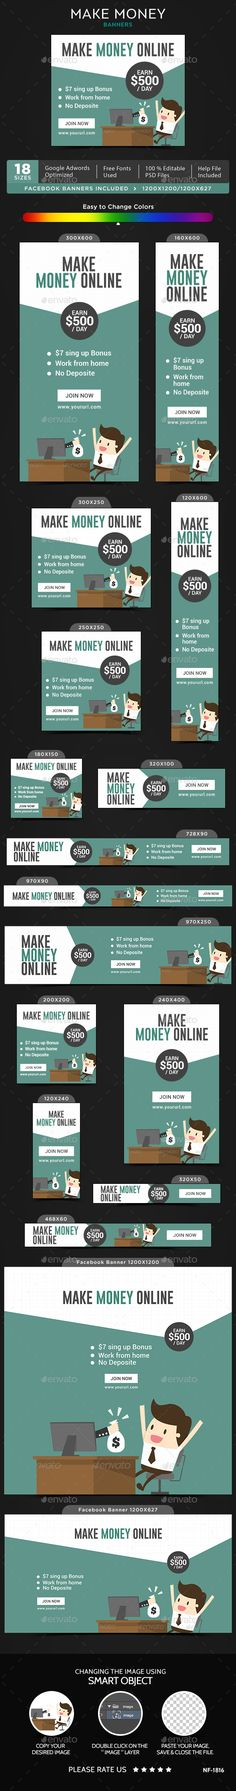 Make Money Banners — Photoshop PSD #discount #make • Available here → https://graphicriver.net/item/make-money-banners/20062398?ref=pxcr